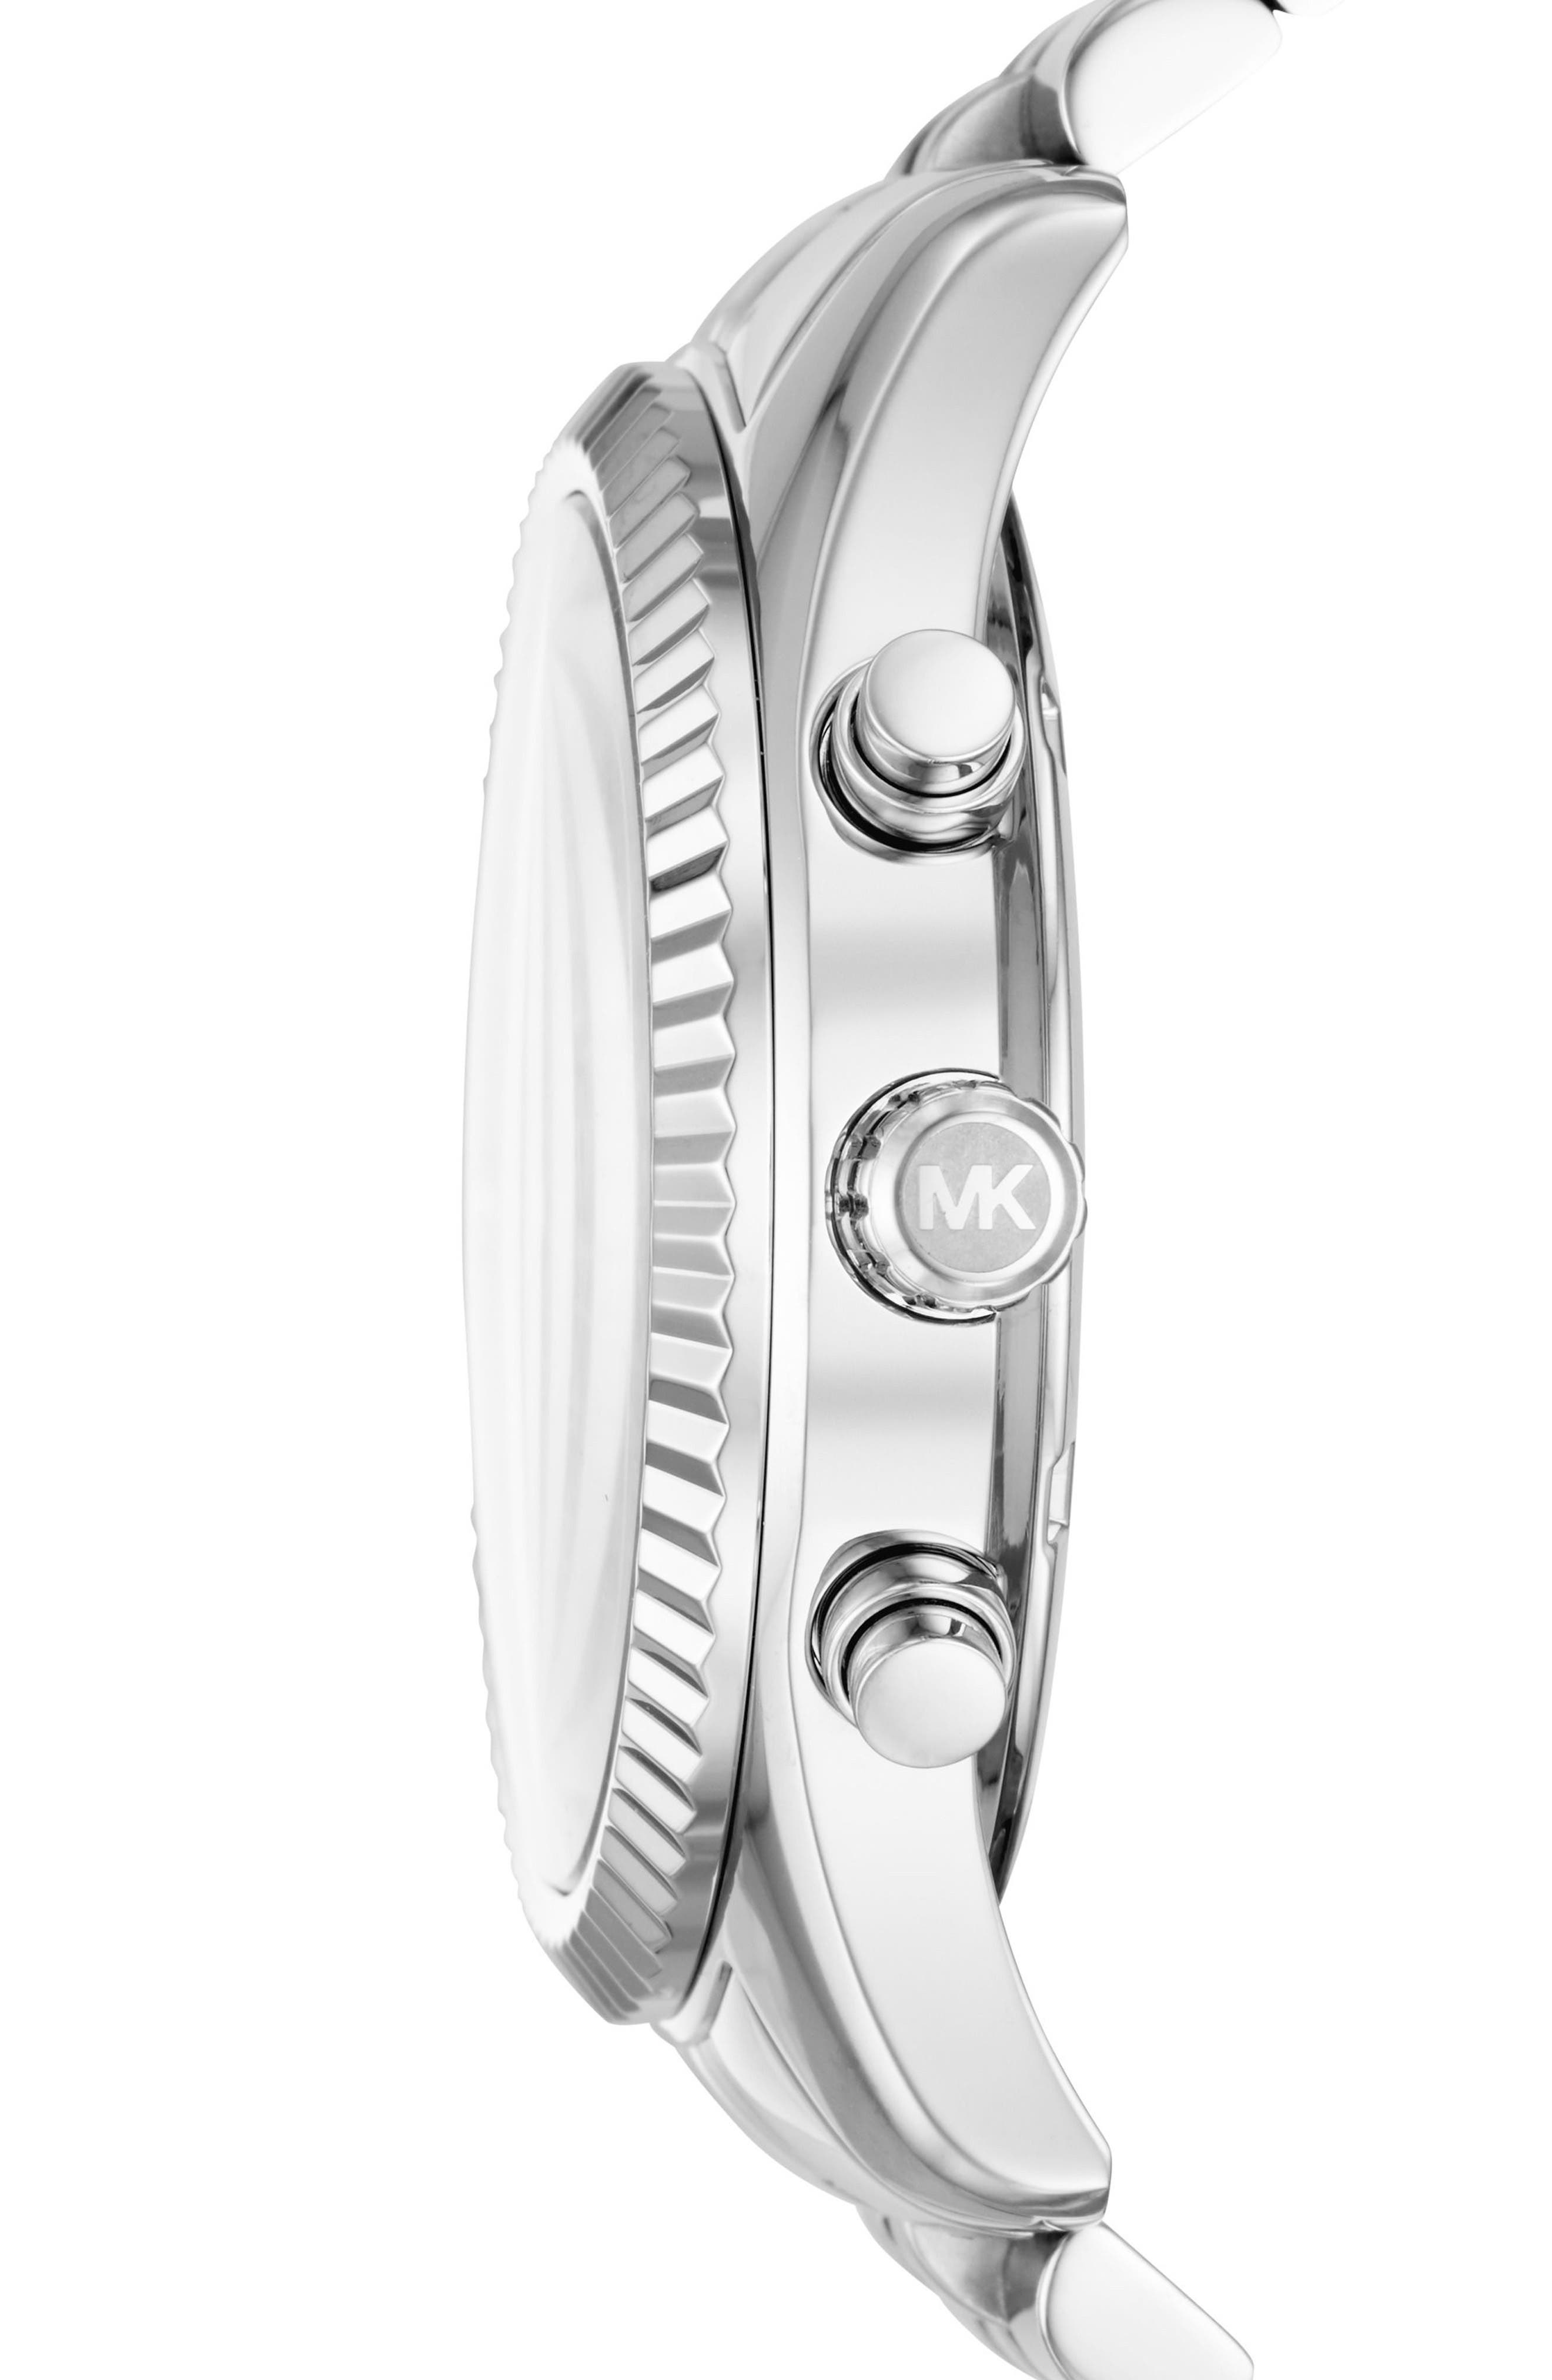 MICHAEL KORS, Lexington Bracelet Chronograph Watch, 44mm x 54mm, Alternate thumbnail 2, color, SILVER/ BLACK/ SILVER